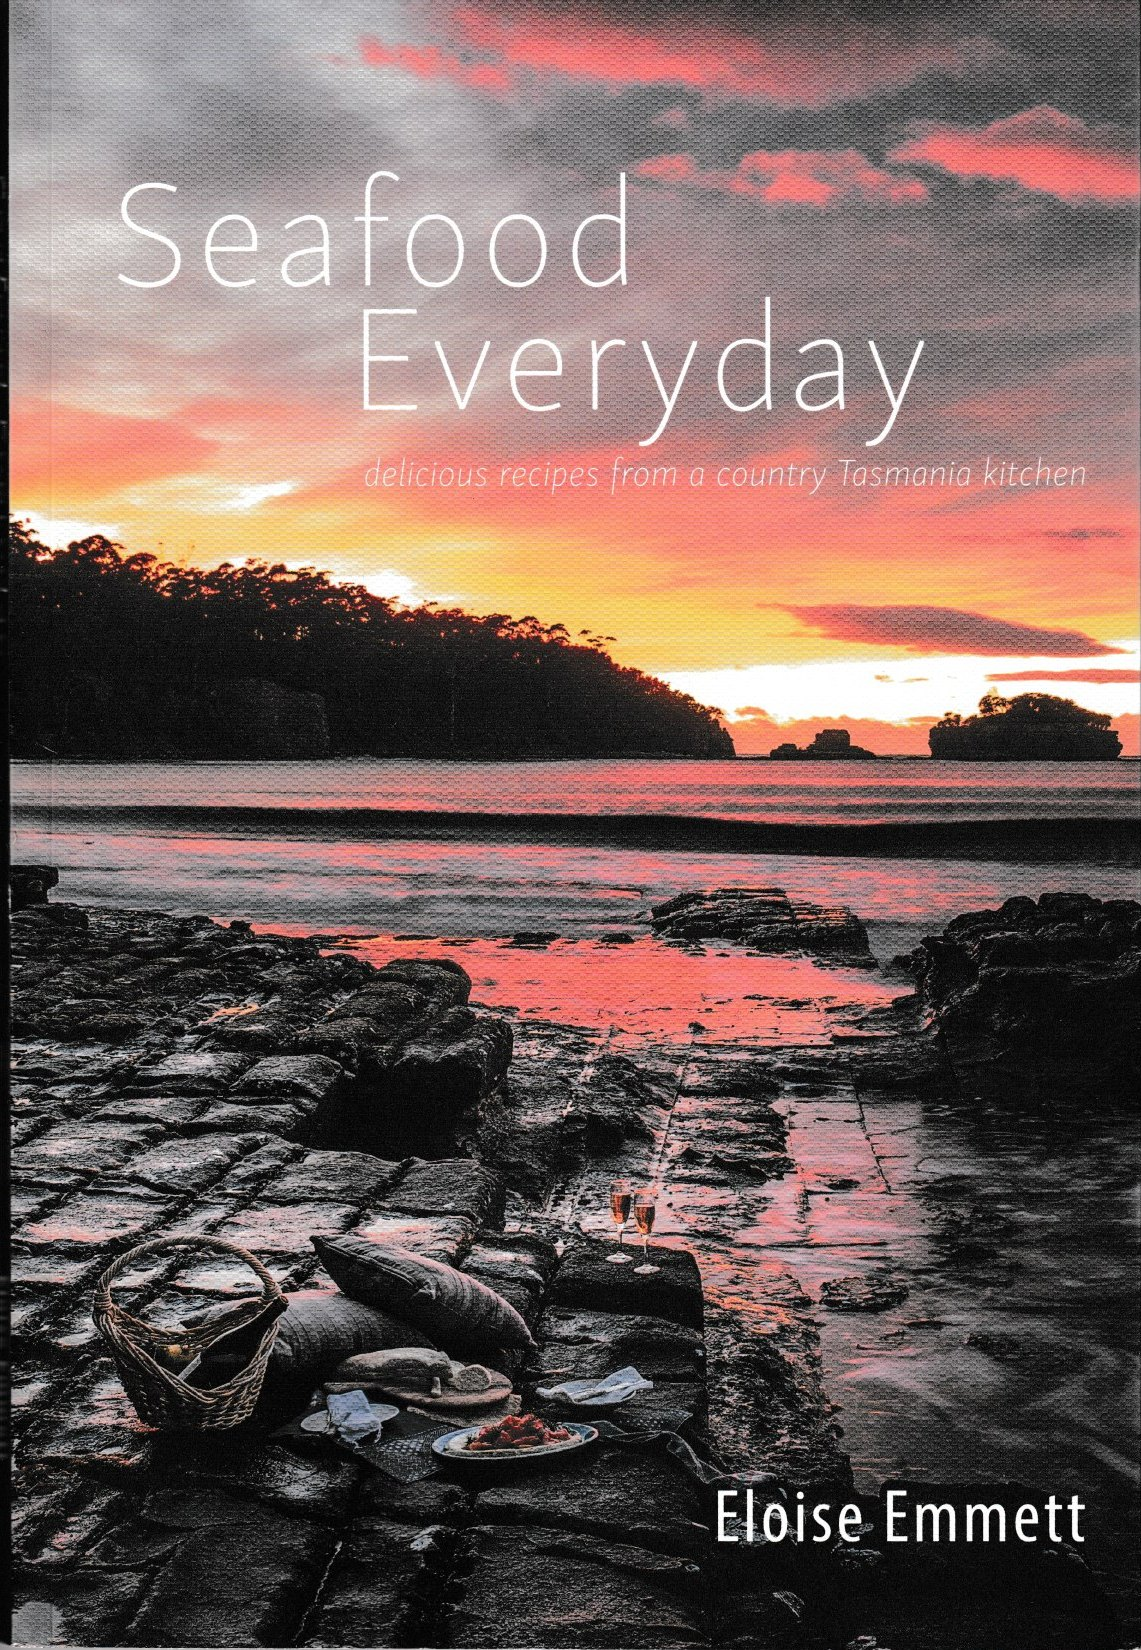 Seafood Everyday - delicious recipes from a Tasmanian country kitchen